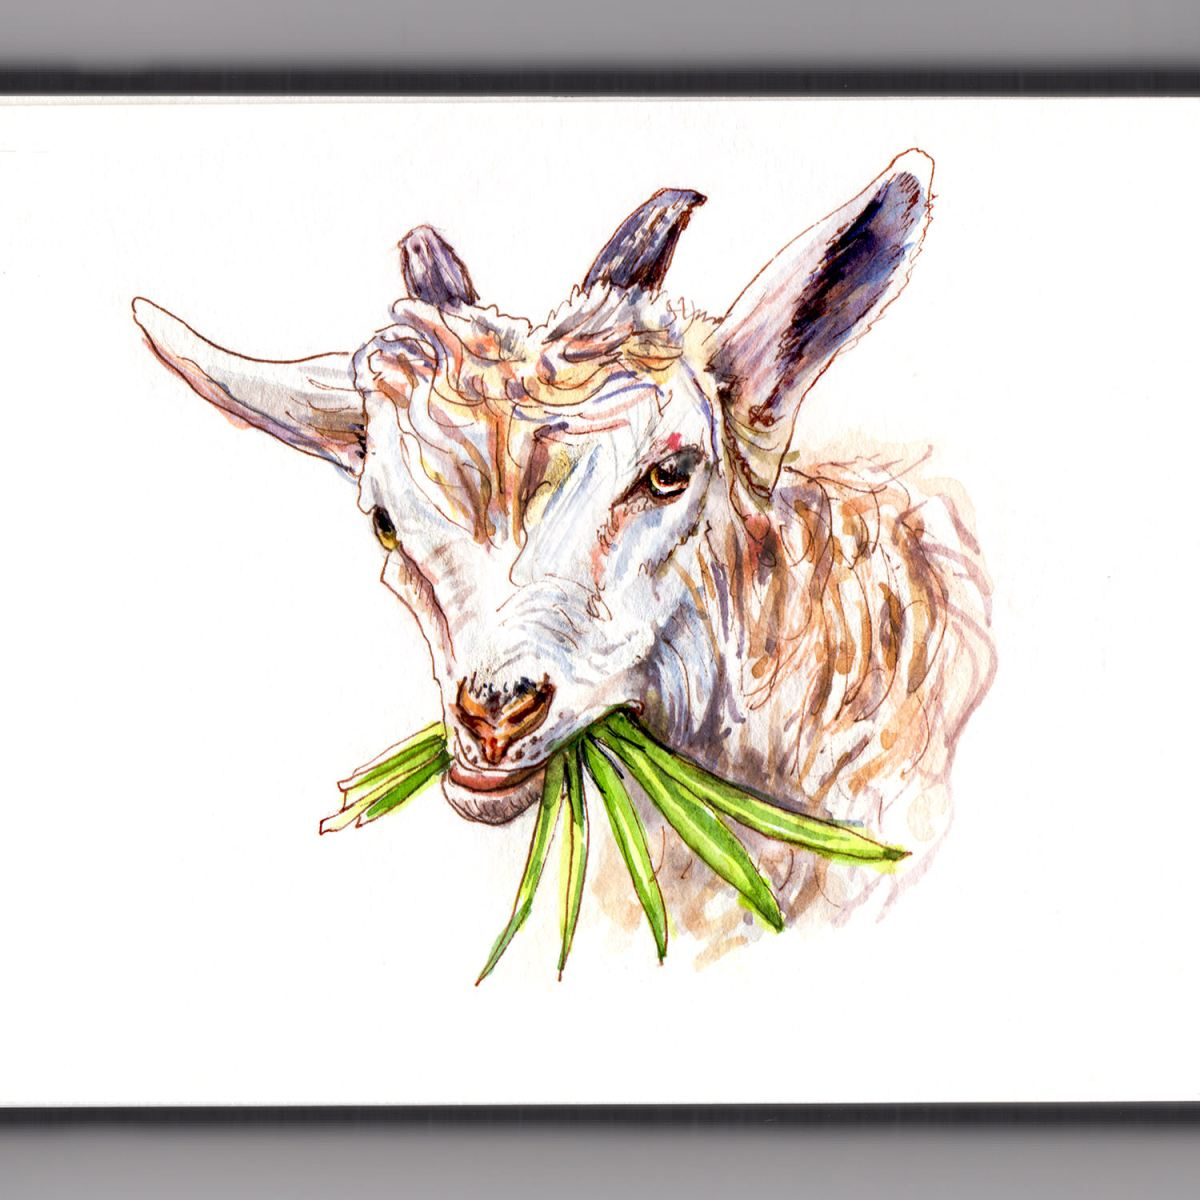 Day 21 - #WorldWatercolorGroup - Goat Eating Grass Watercolor - #doodlewash